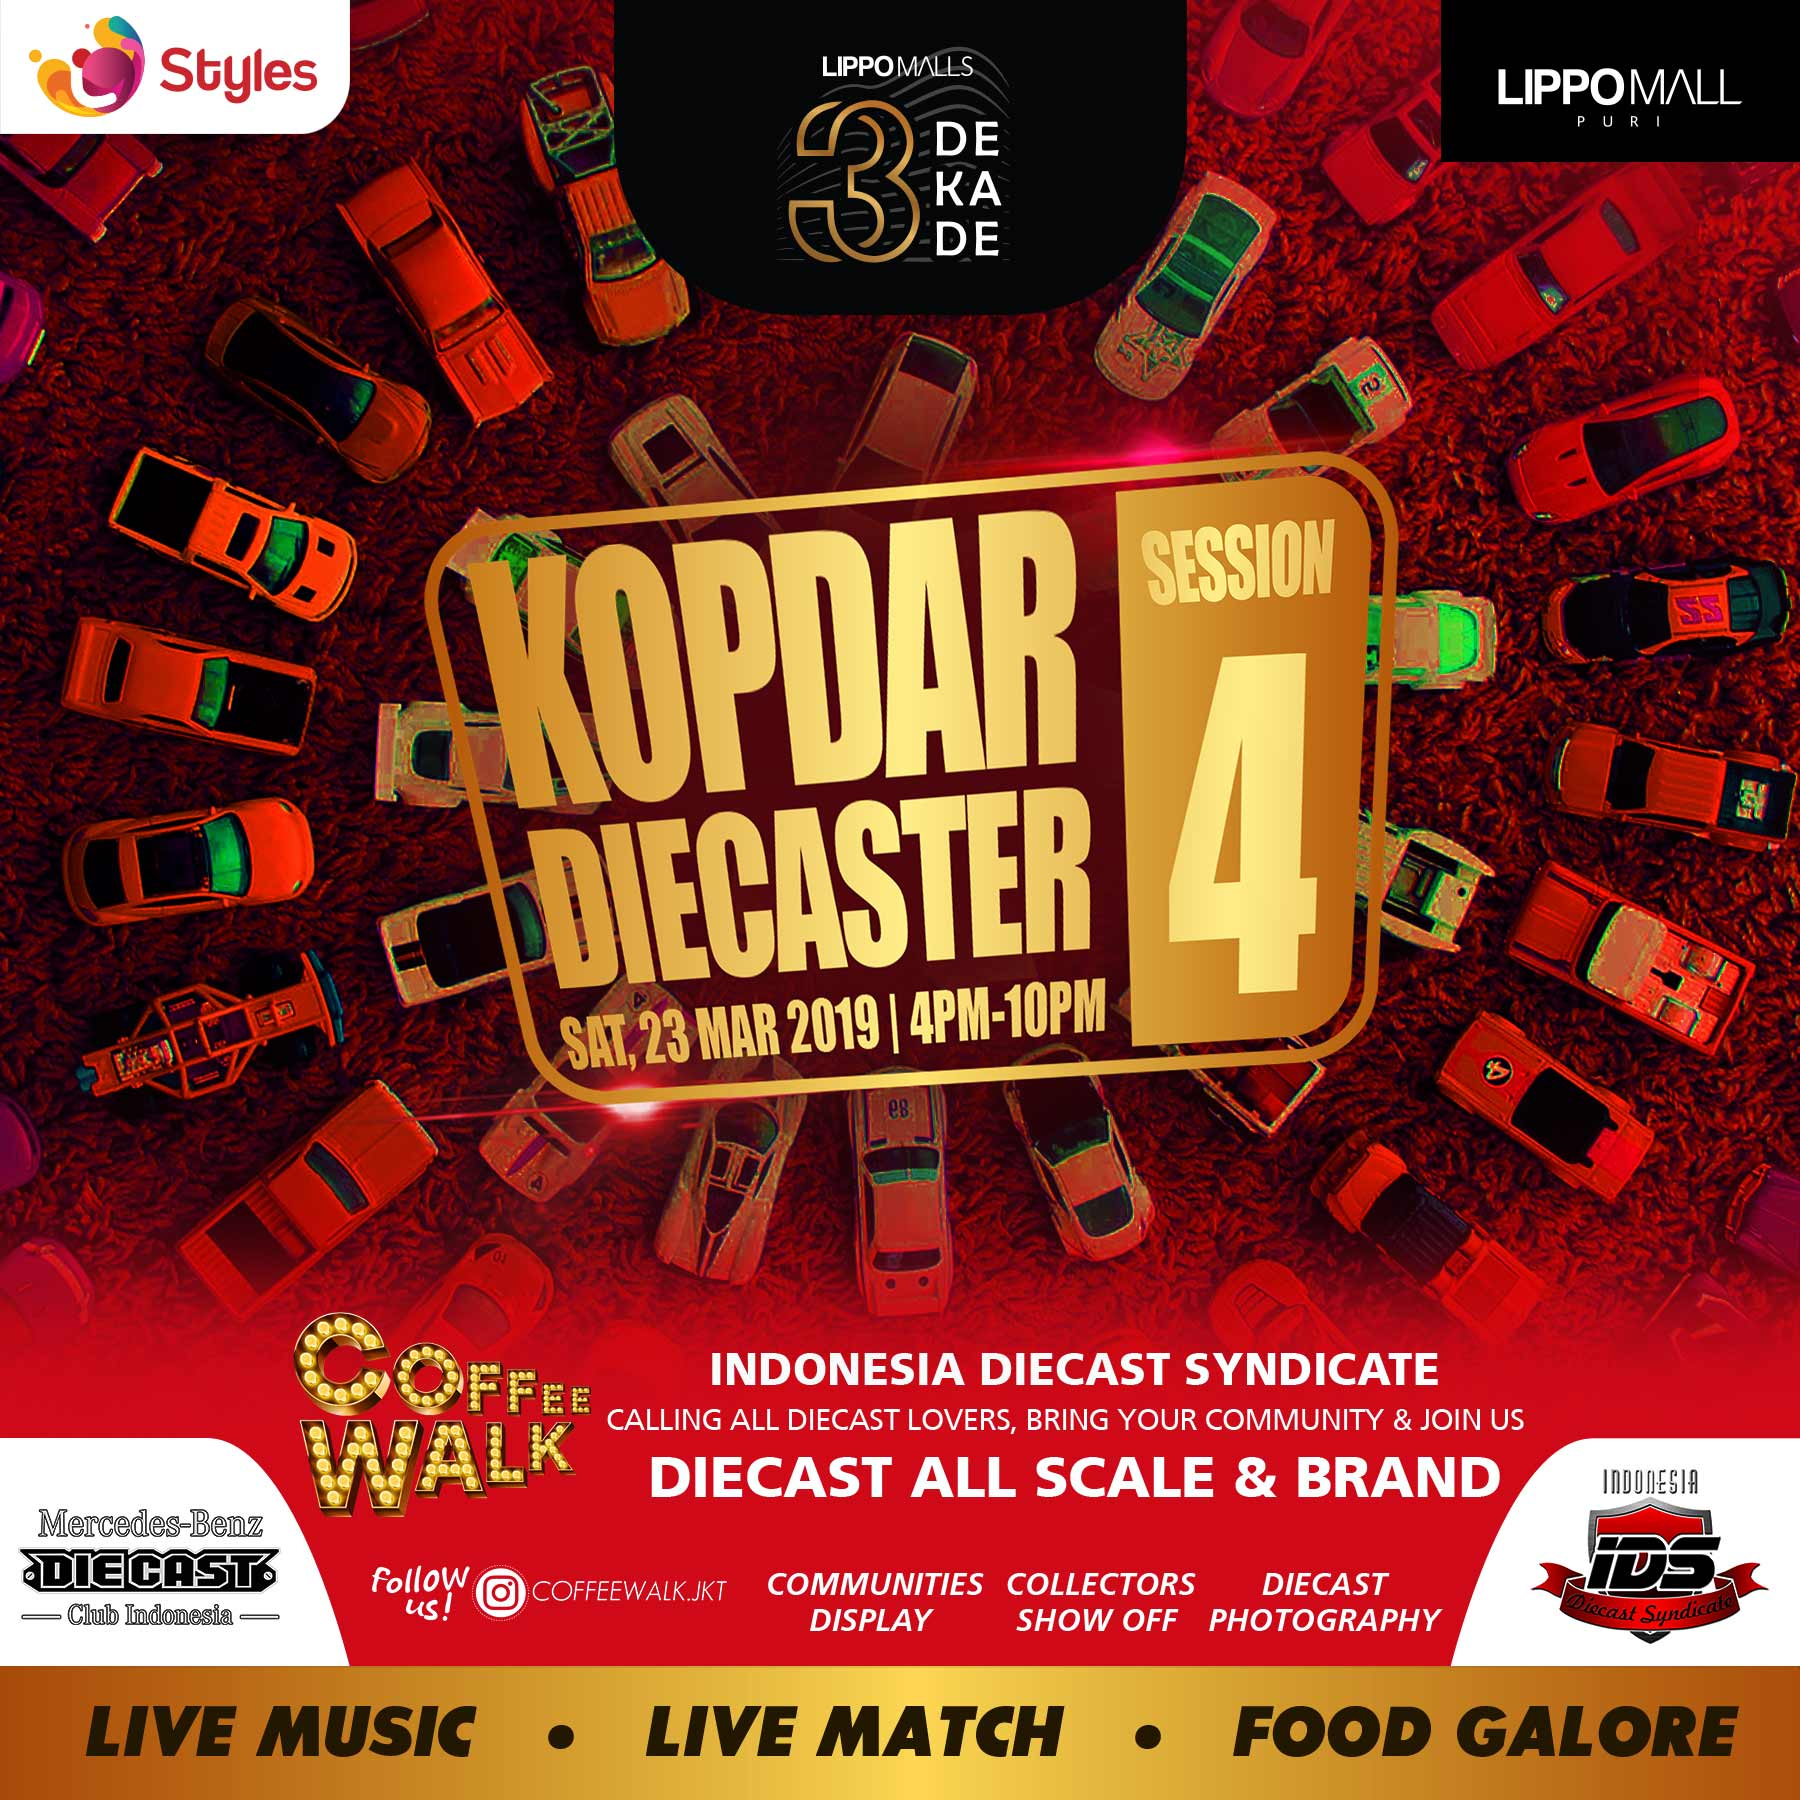 kopdar diecaster session 4 event in lippo mall puri st. moritz